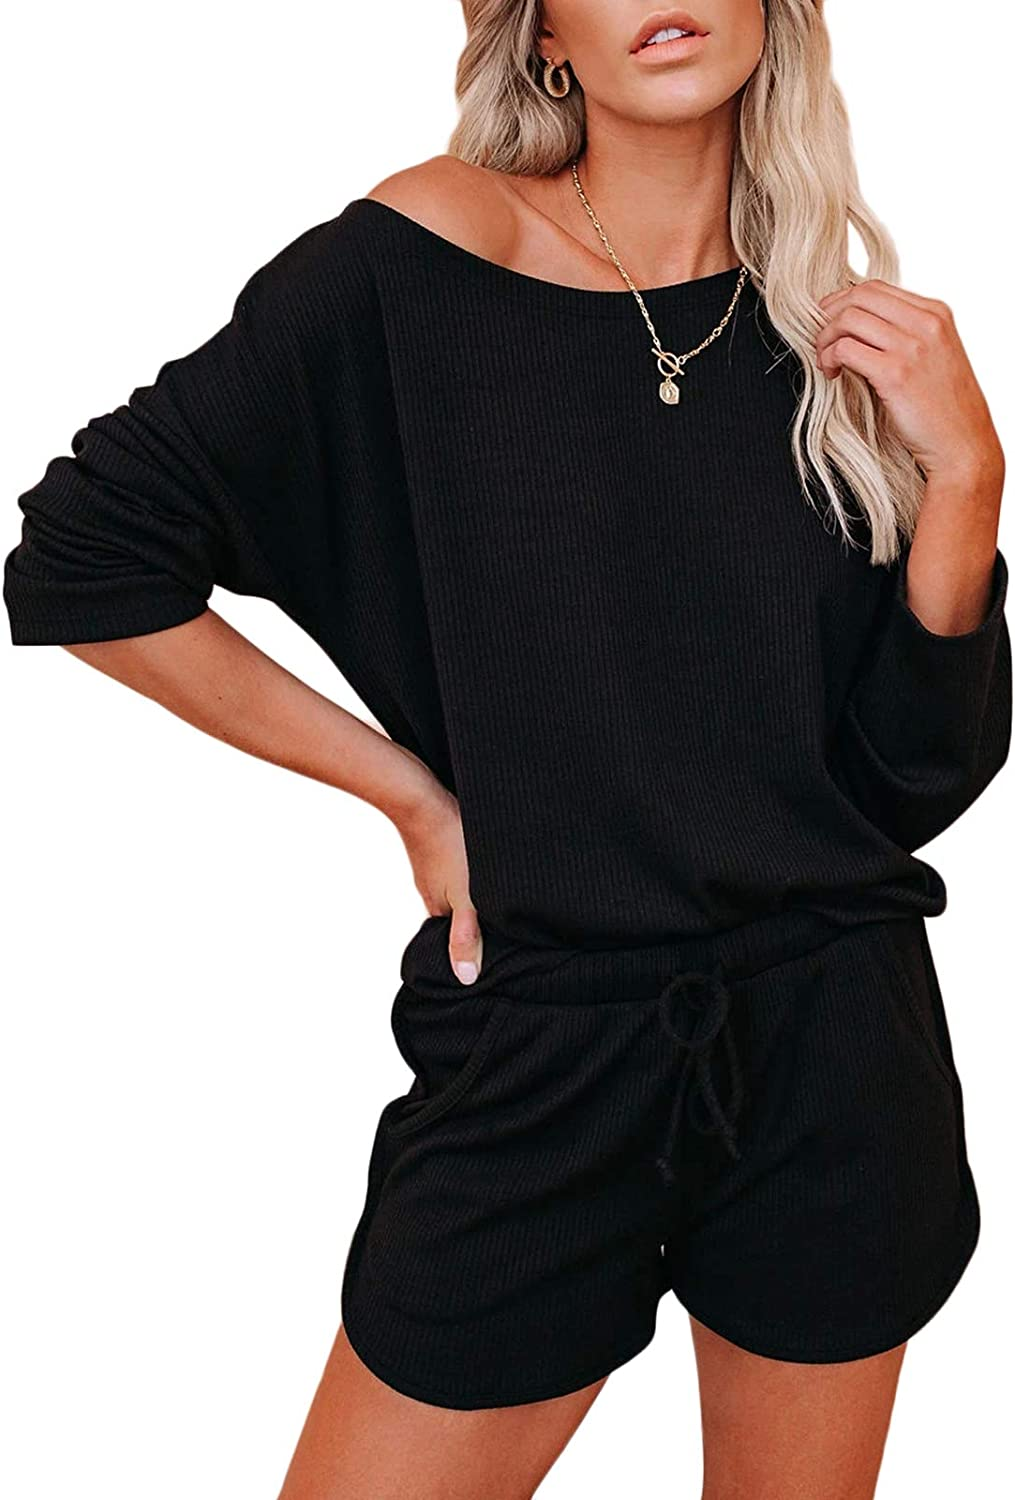 Womens Ribbed Short Sets 2 Piece Outfits Knit Lounge Pajama Set Long Sleeve Pullover Top and Shorts